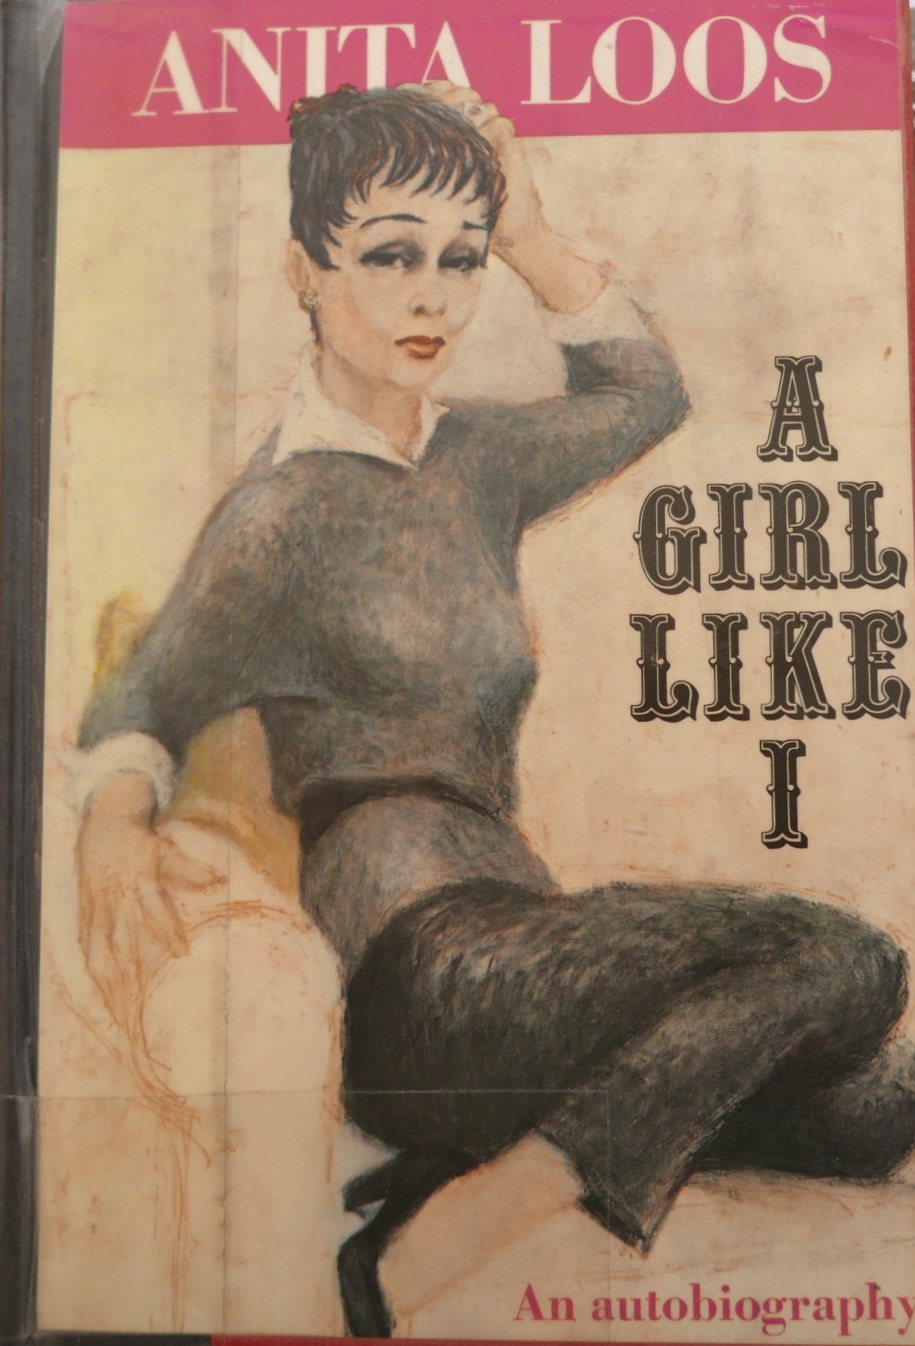 The cover of the book A Girl Like I